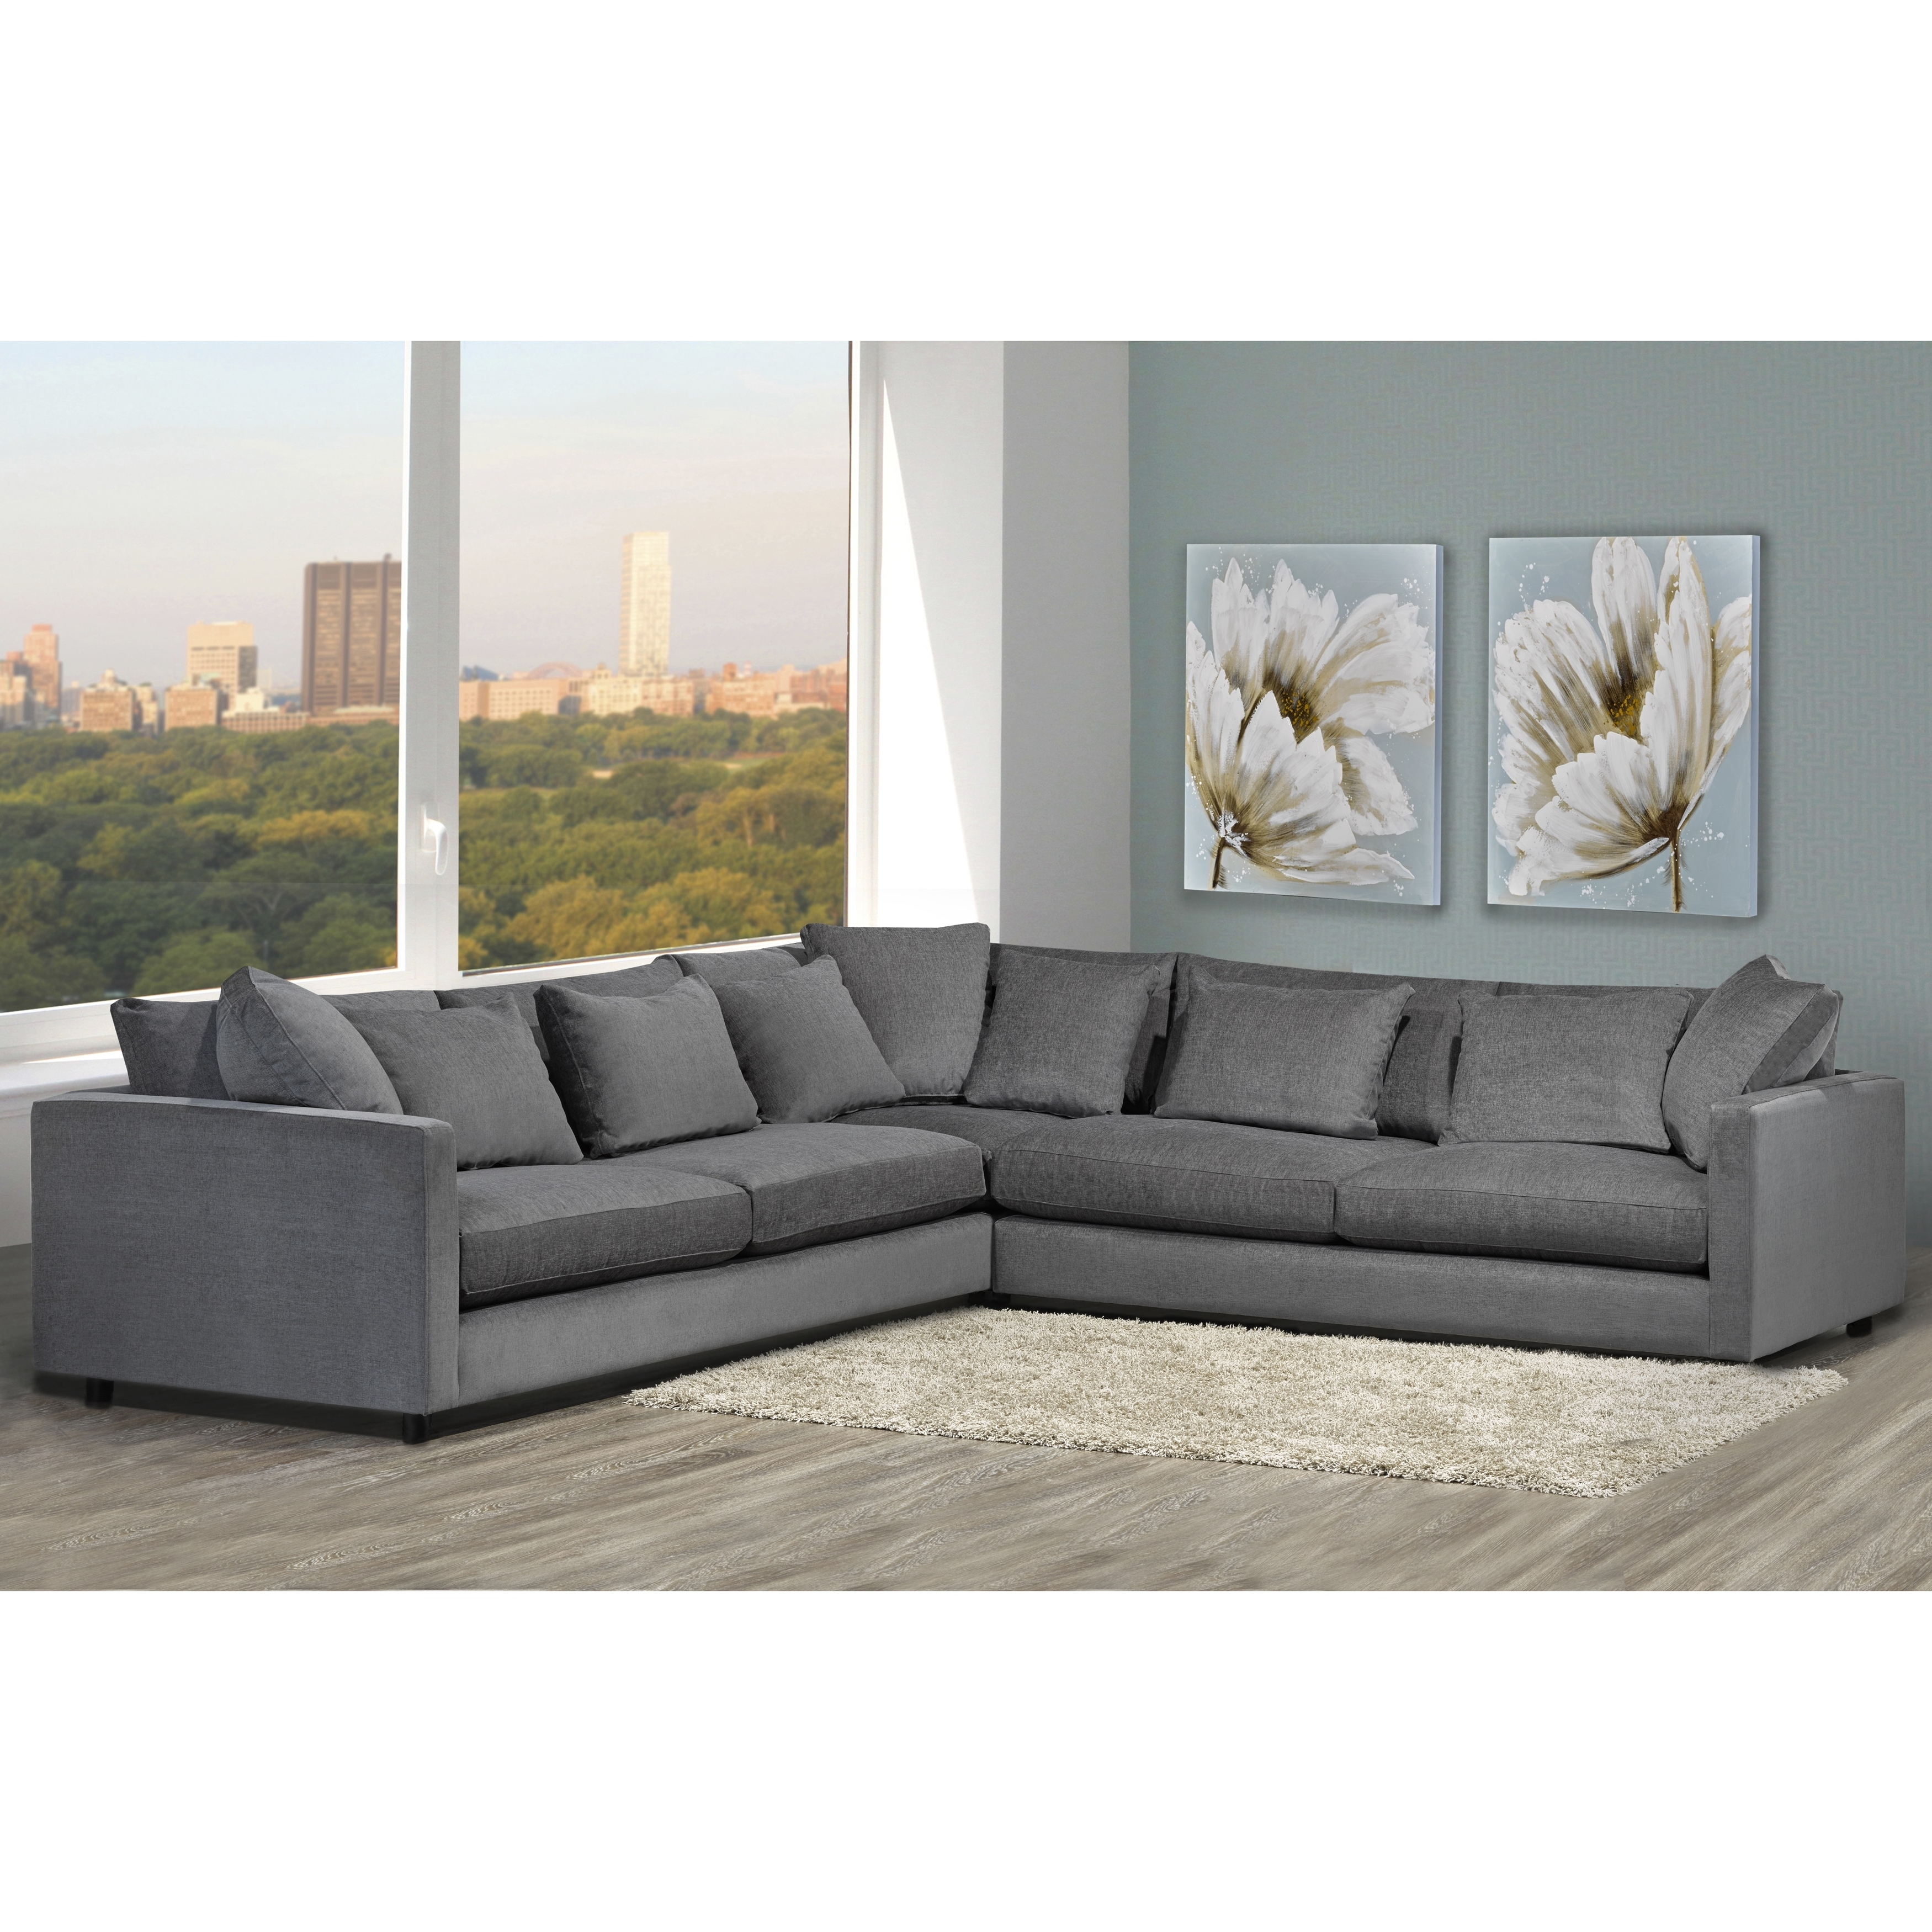 Fashionable Made To Order Modern Lounge Down Filled Grey Fabric Sectional Sofa Throughout Down Filled Sectional Sofas (View 10 of 20)